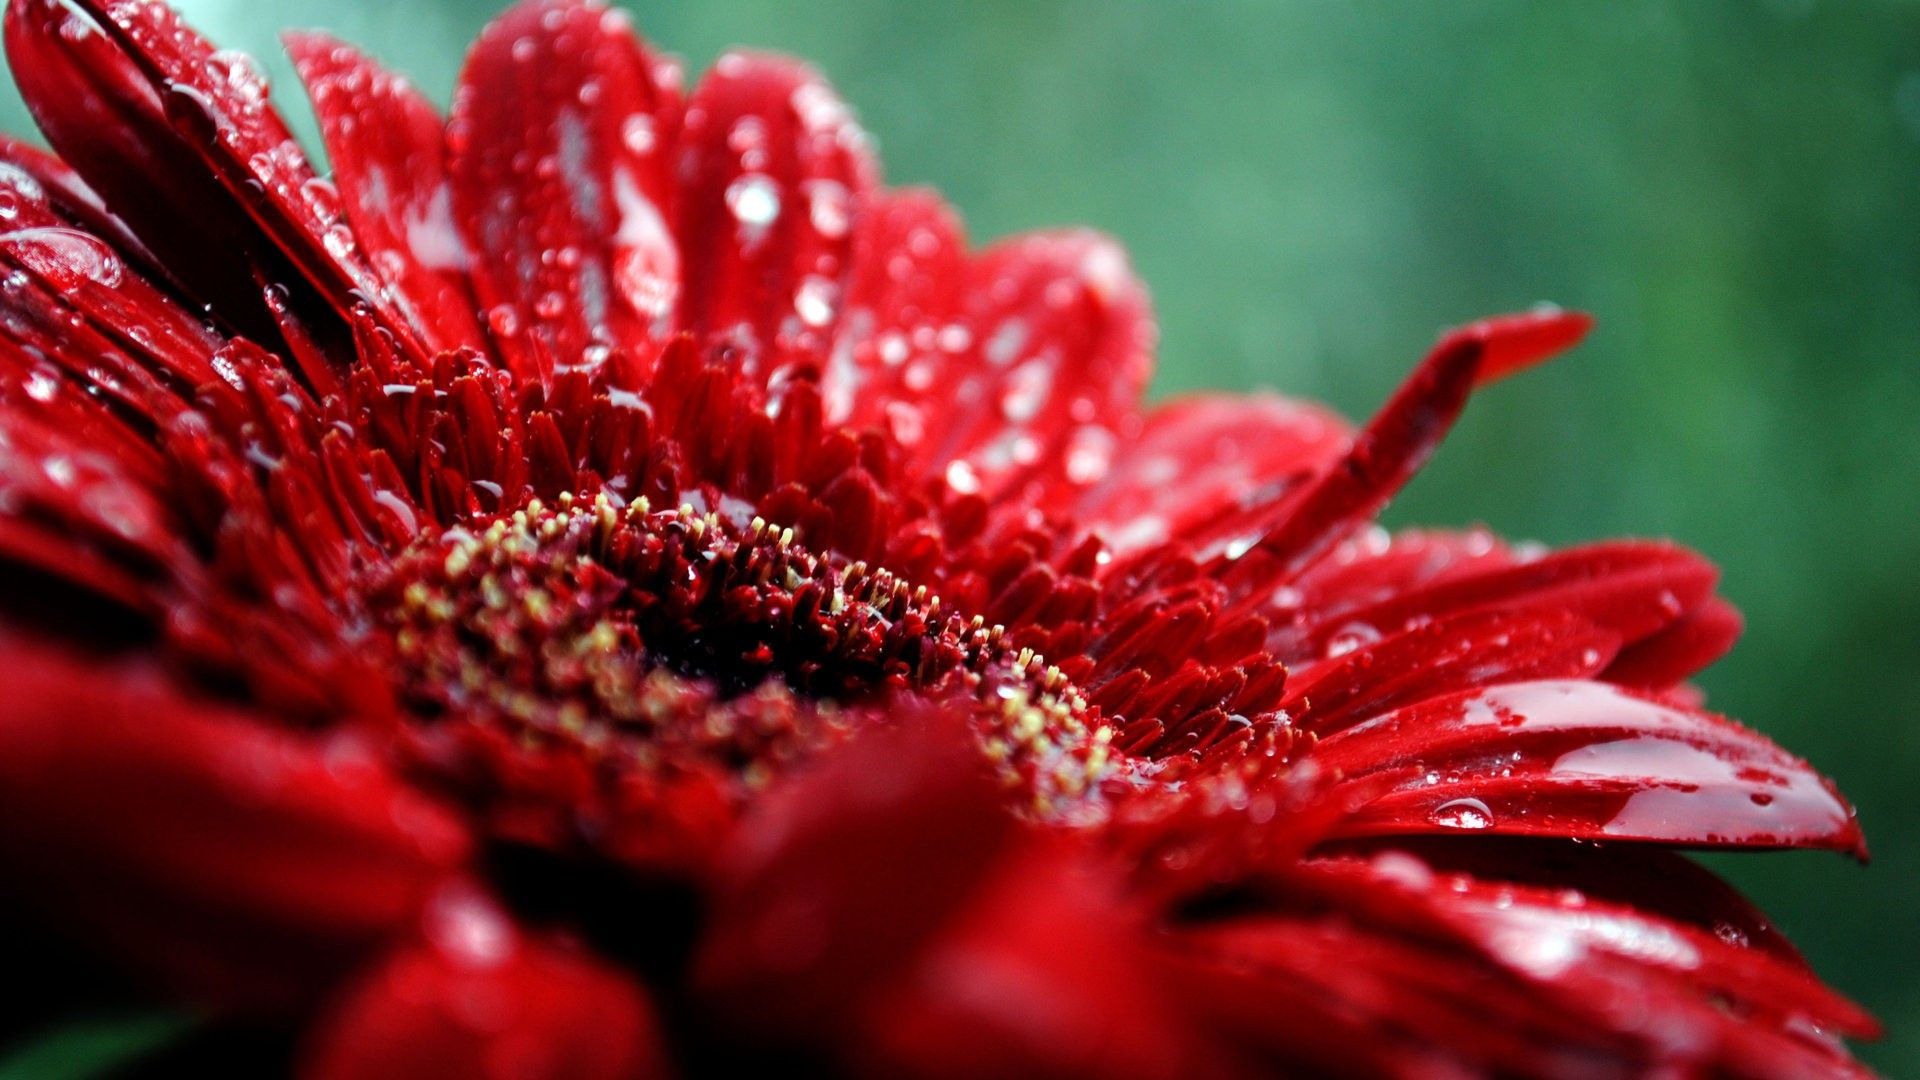 Red Flowers Hd Wallpapers Red Flowers Images Cool Wallpapers Red Flower Wallpaper Wallpaper Nature Flowers Flower Wallpaper